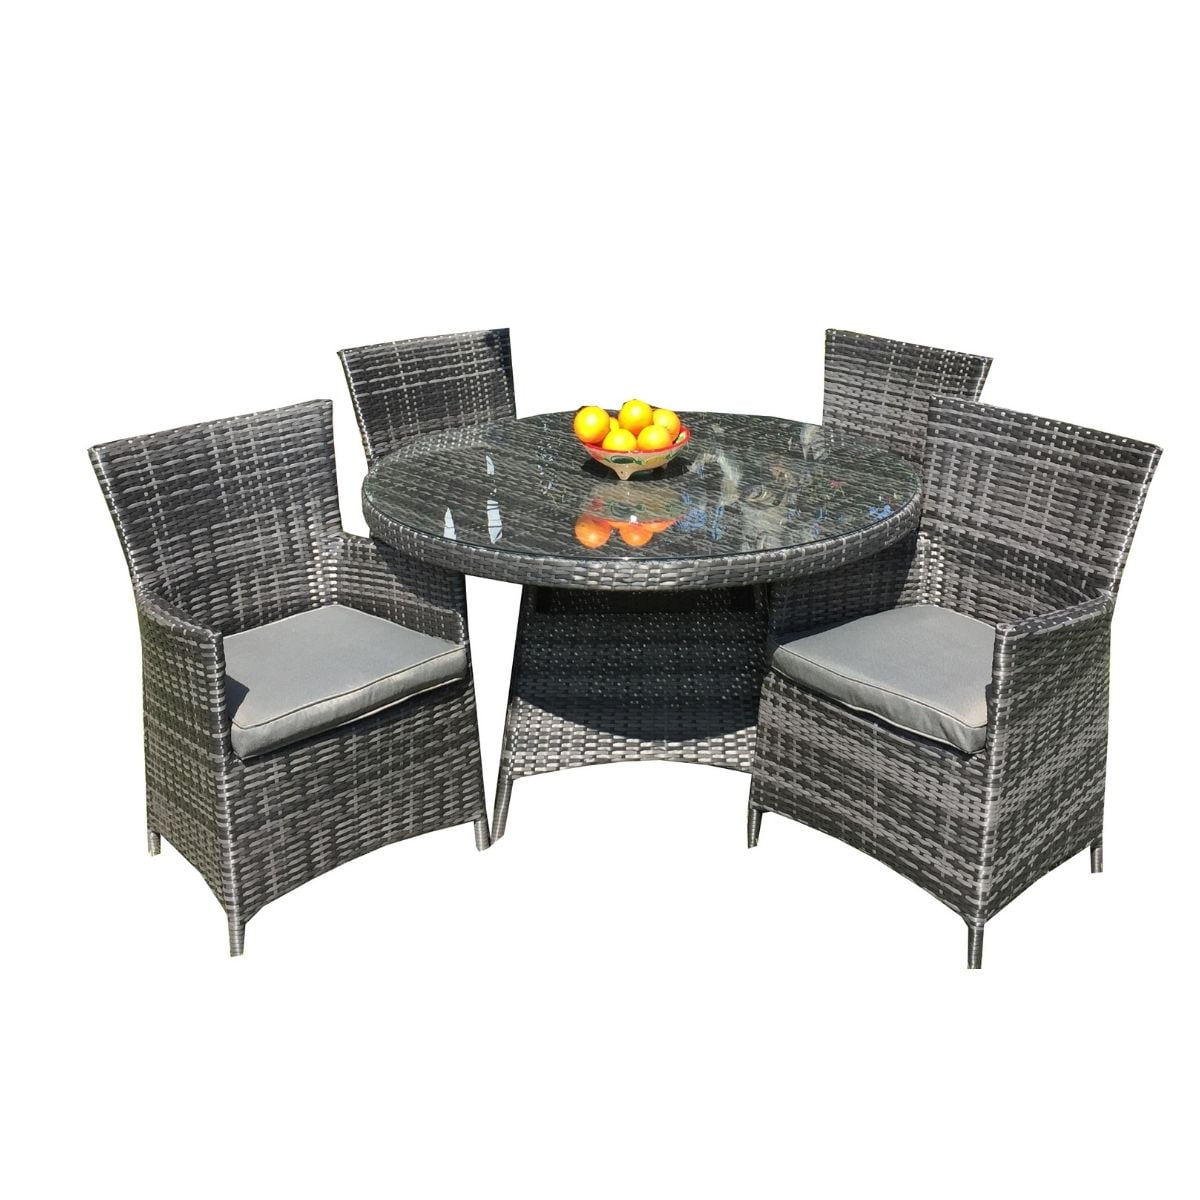 Rhodes Rattan Outdoor Furniture 4 Seater Set